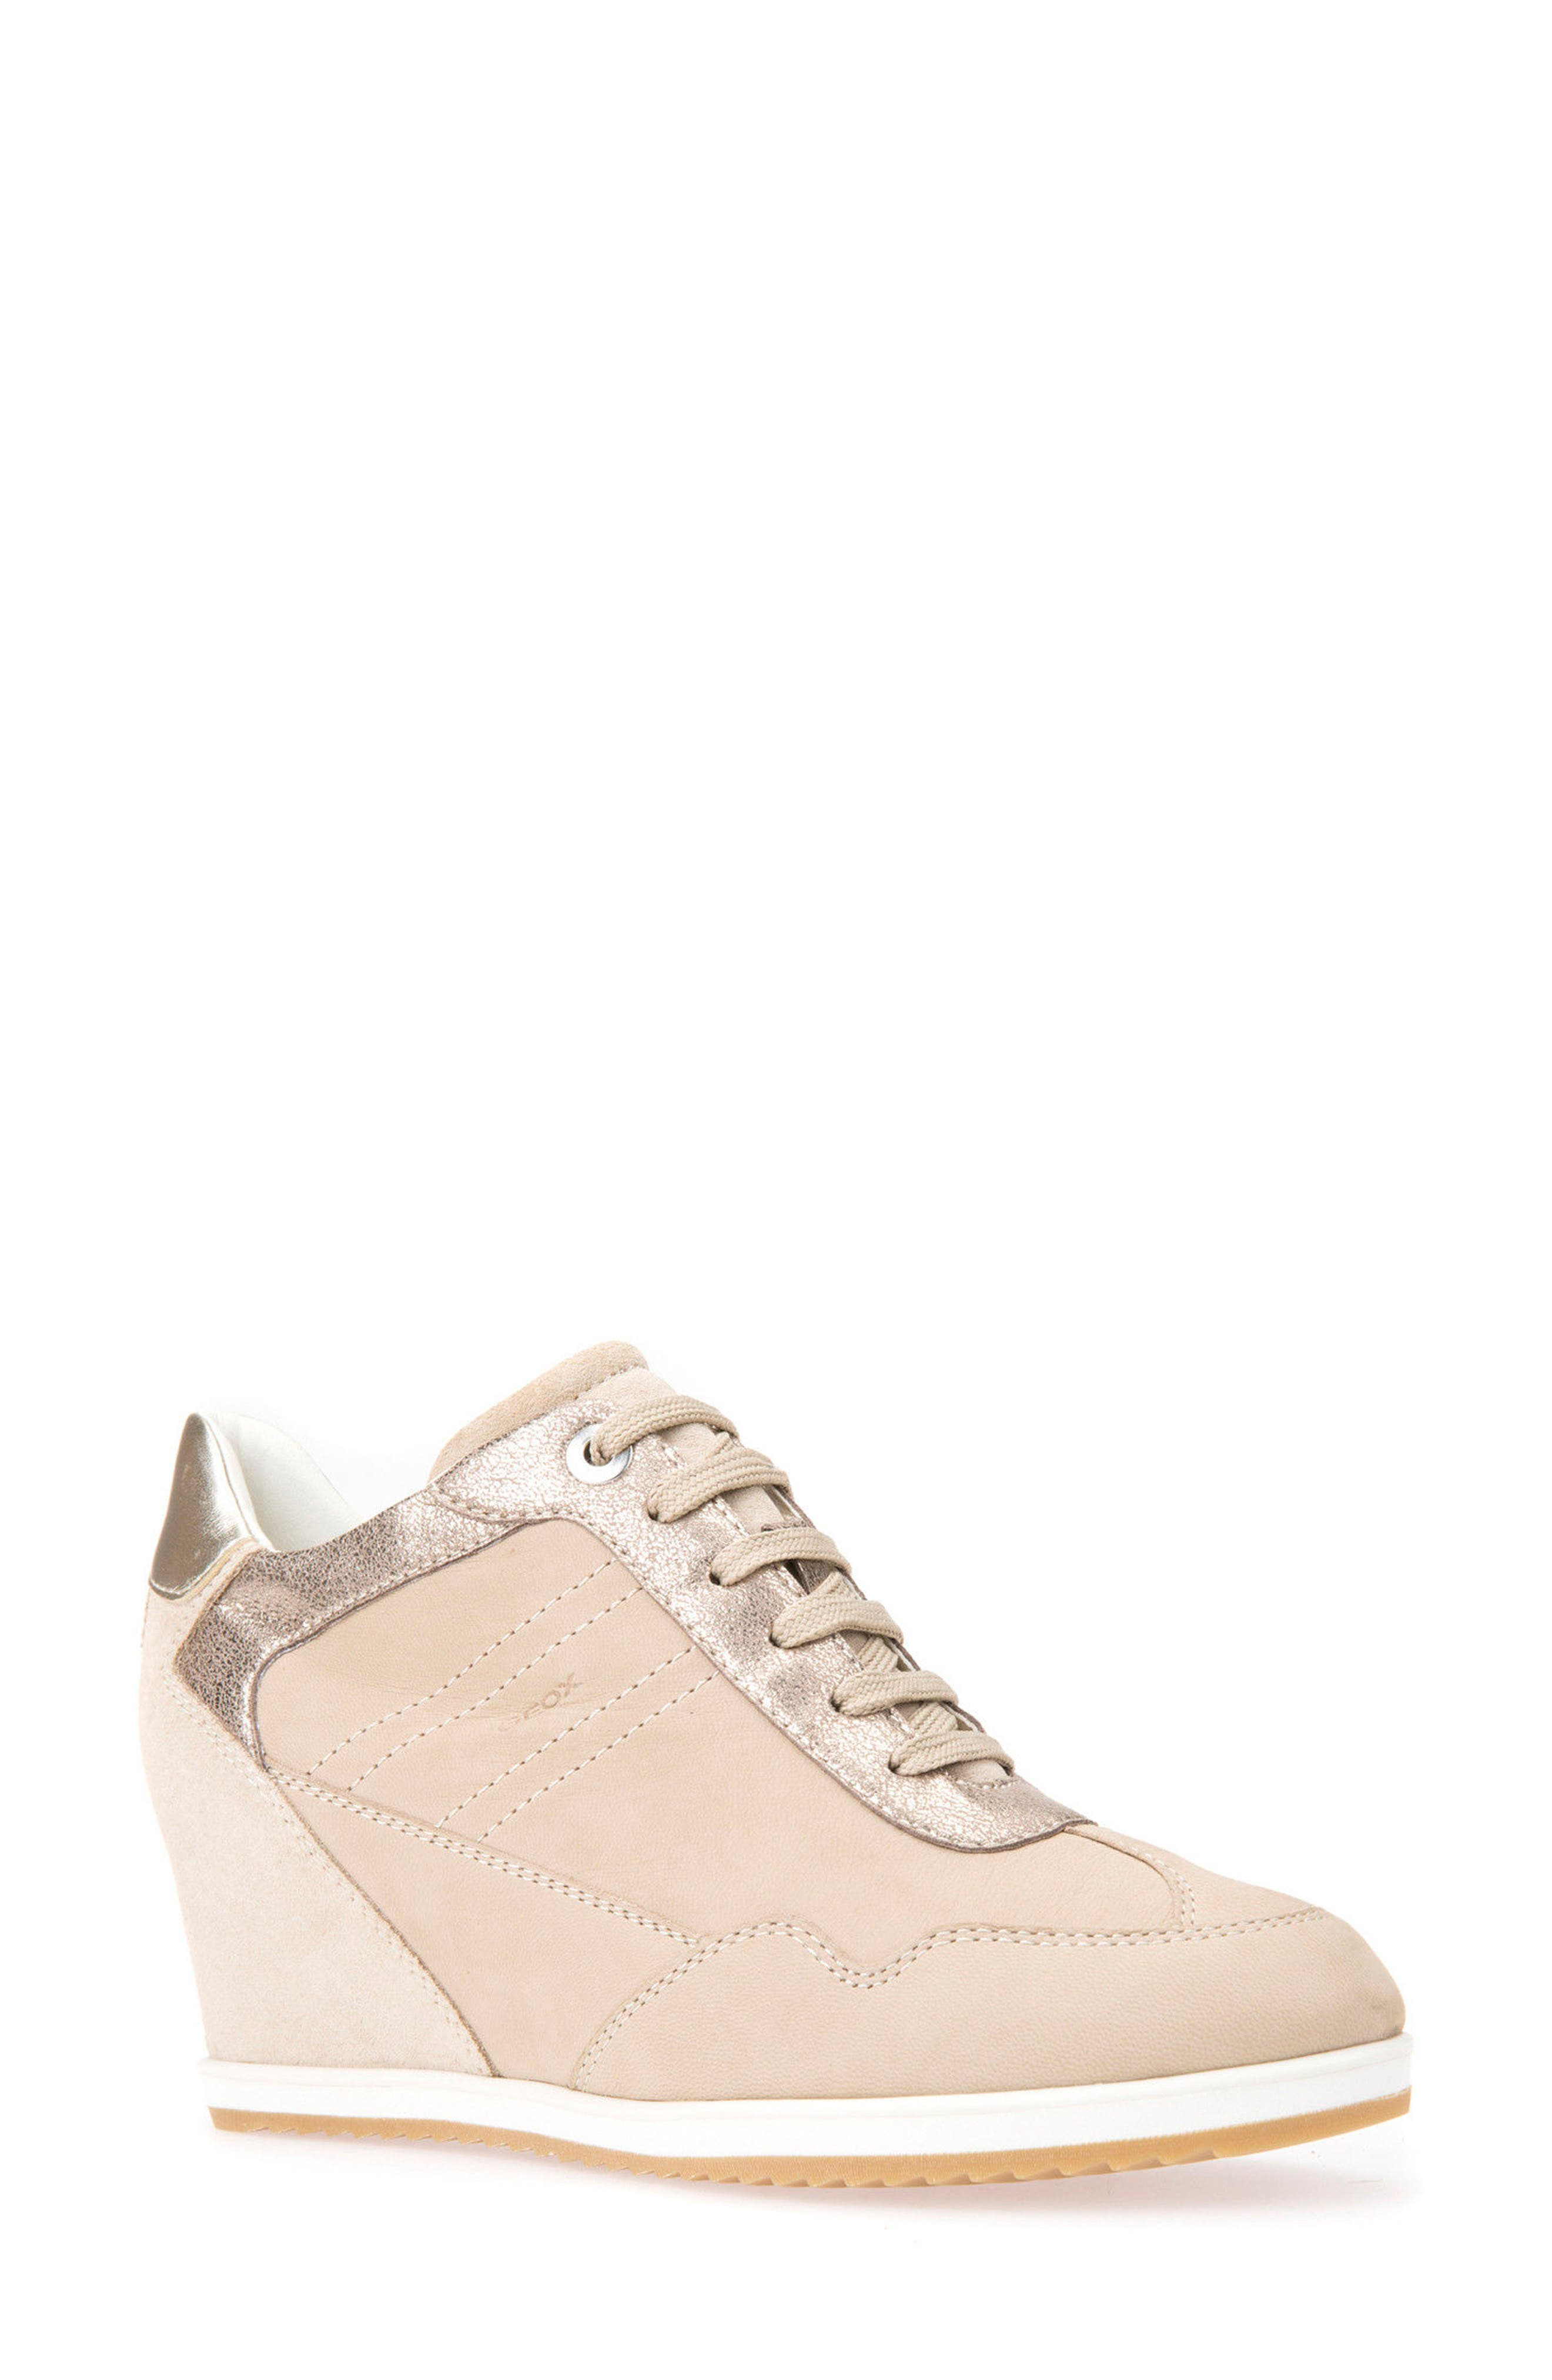 Illusion 34 Wedge Sneaker,                         Main,                         color, SAND LEATHER